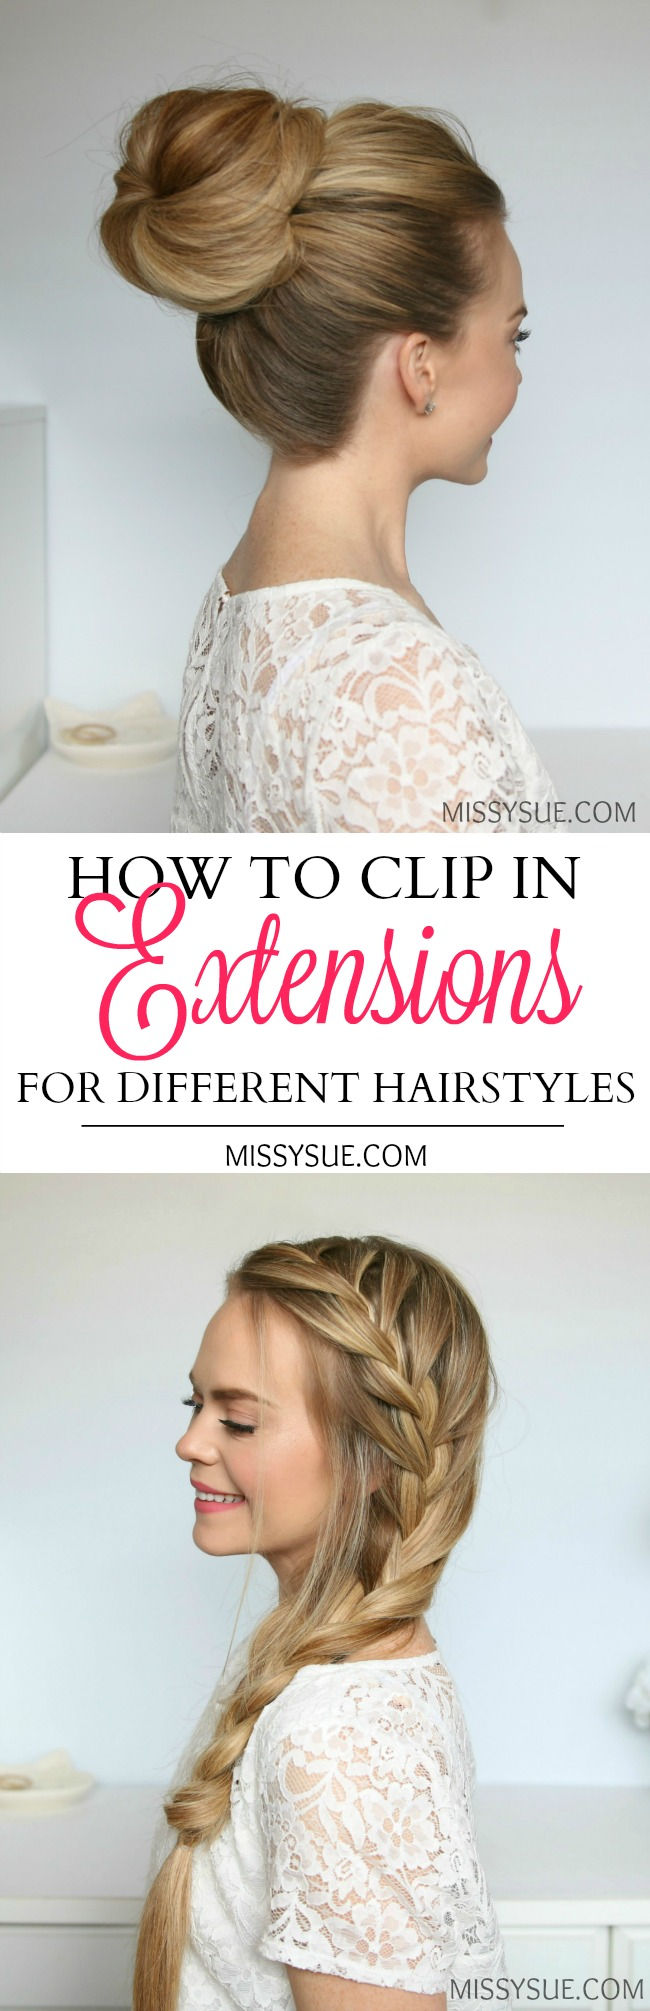 How to Clip in Extensions for Different Hairstyles | MISSY SUE